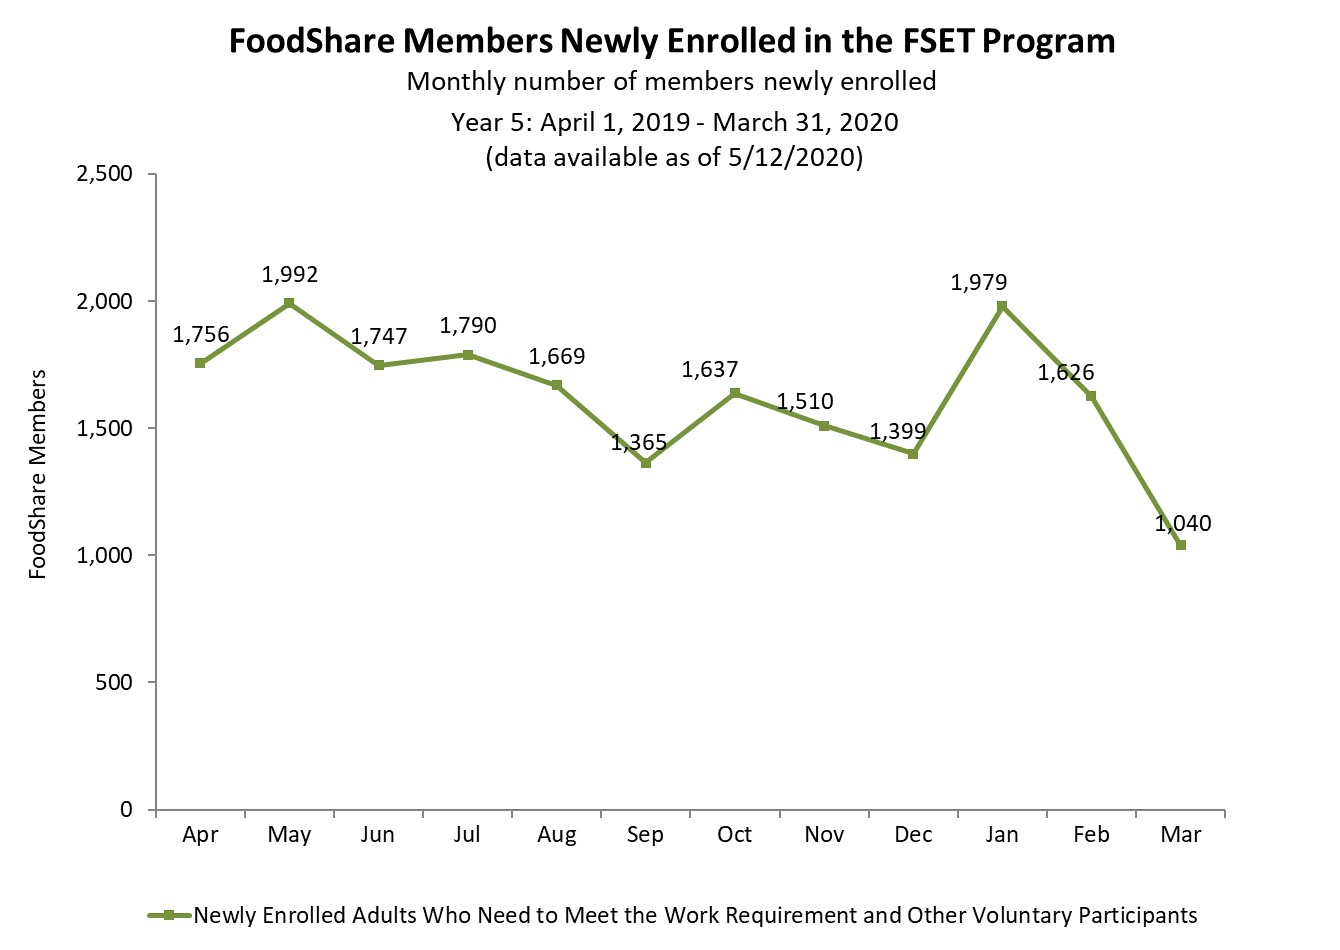 Chart showing FoodShare New enrollees for year 5 as of 8/8/2019